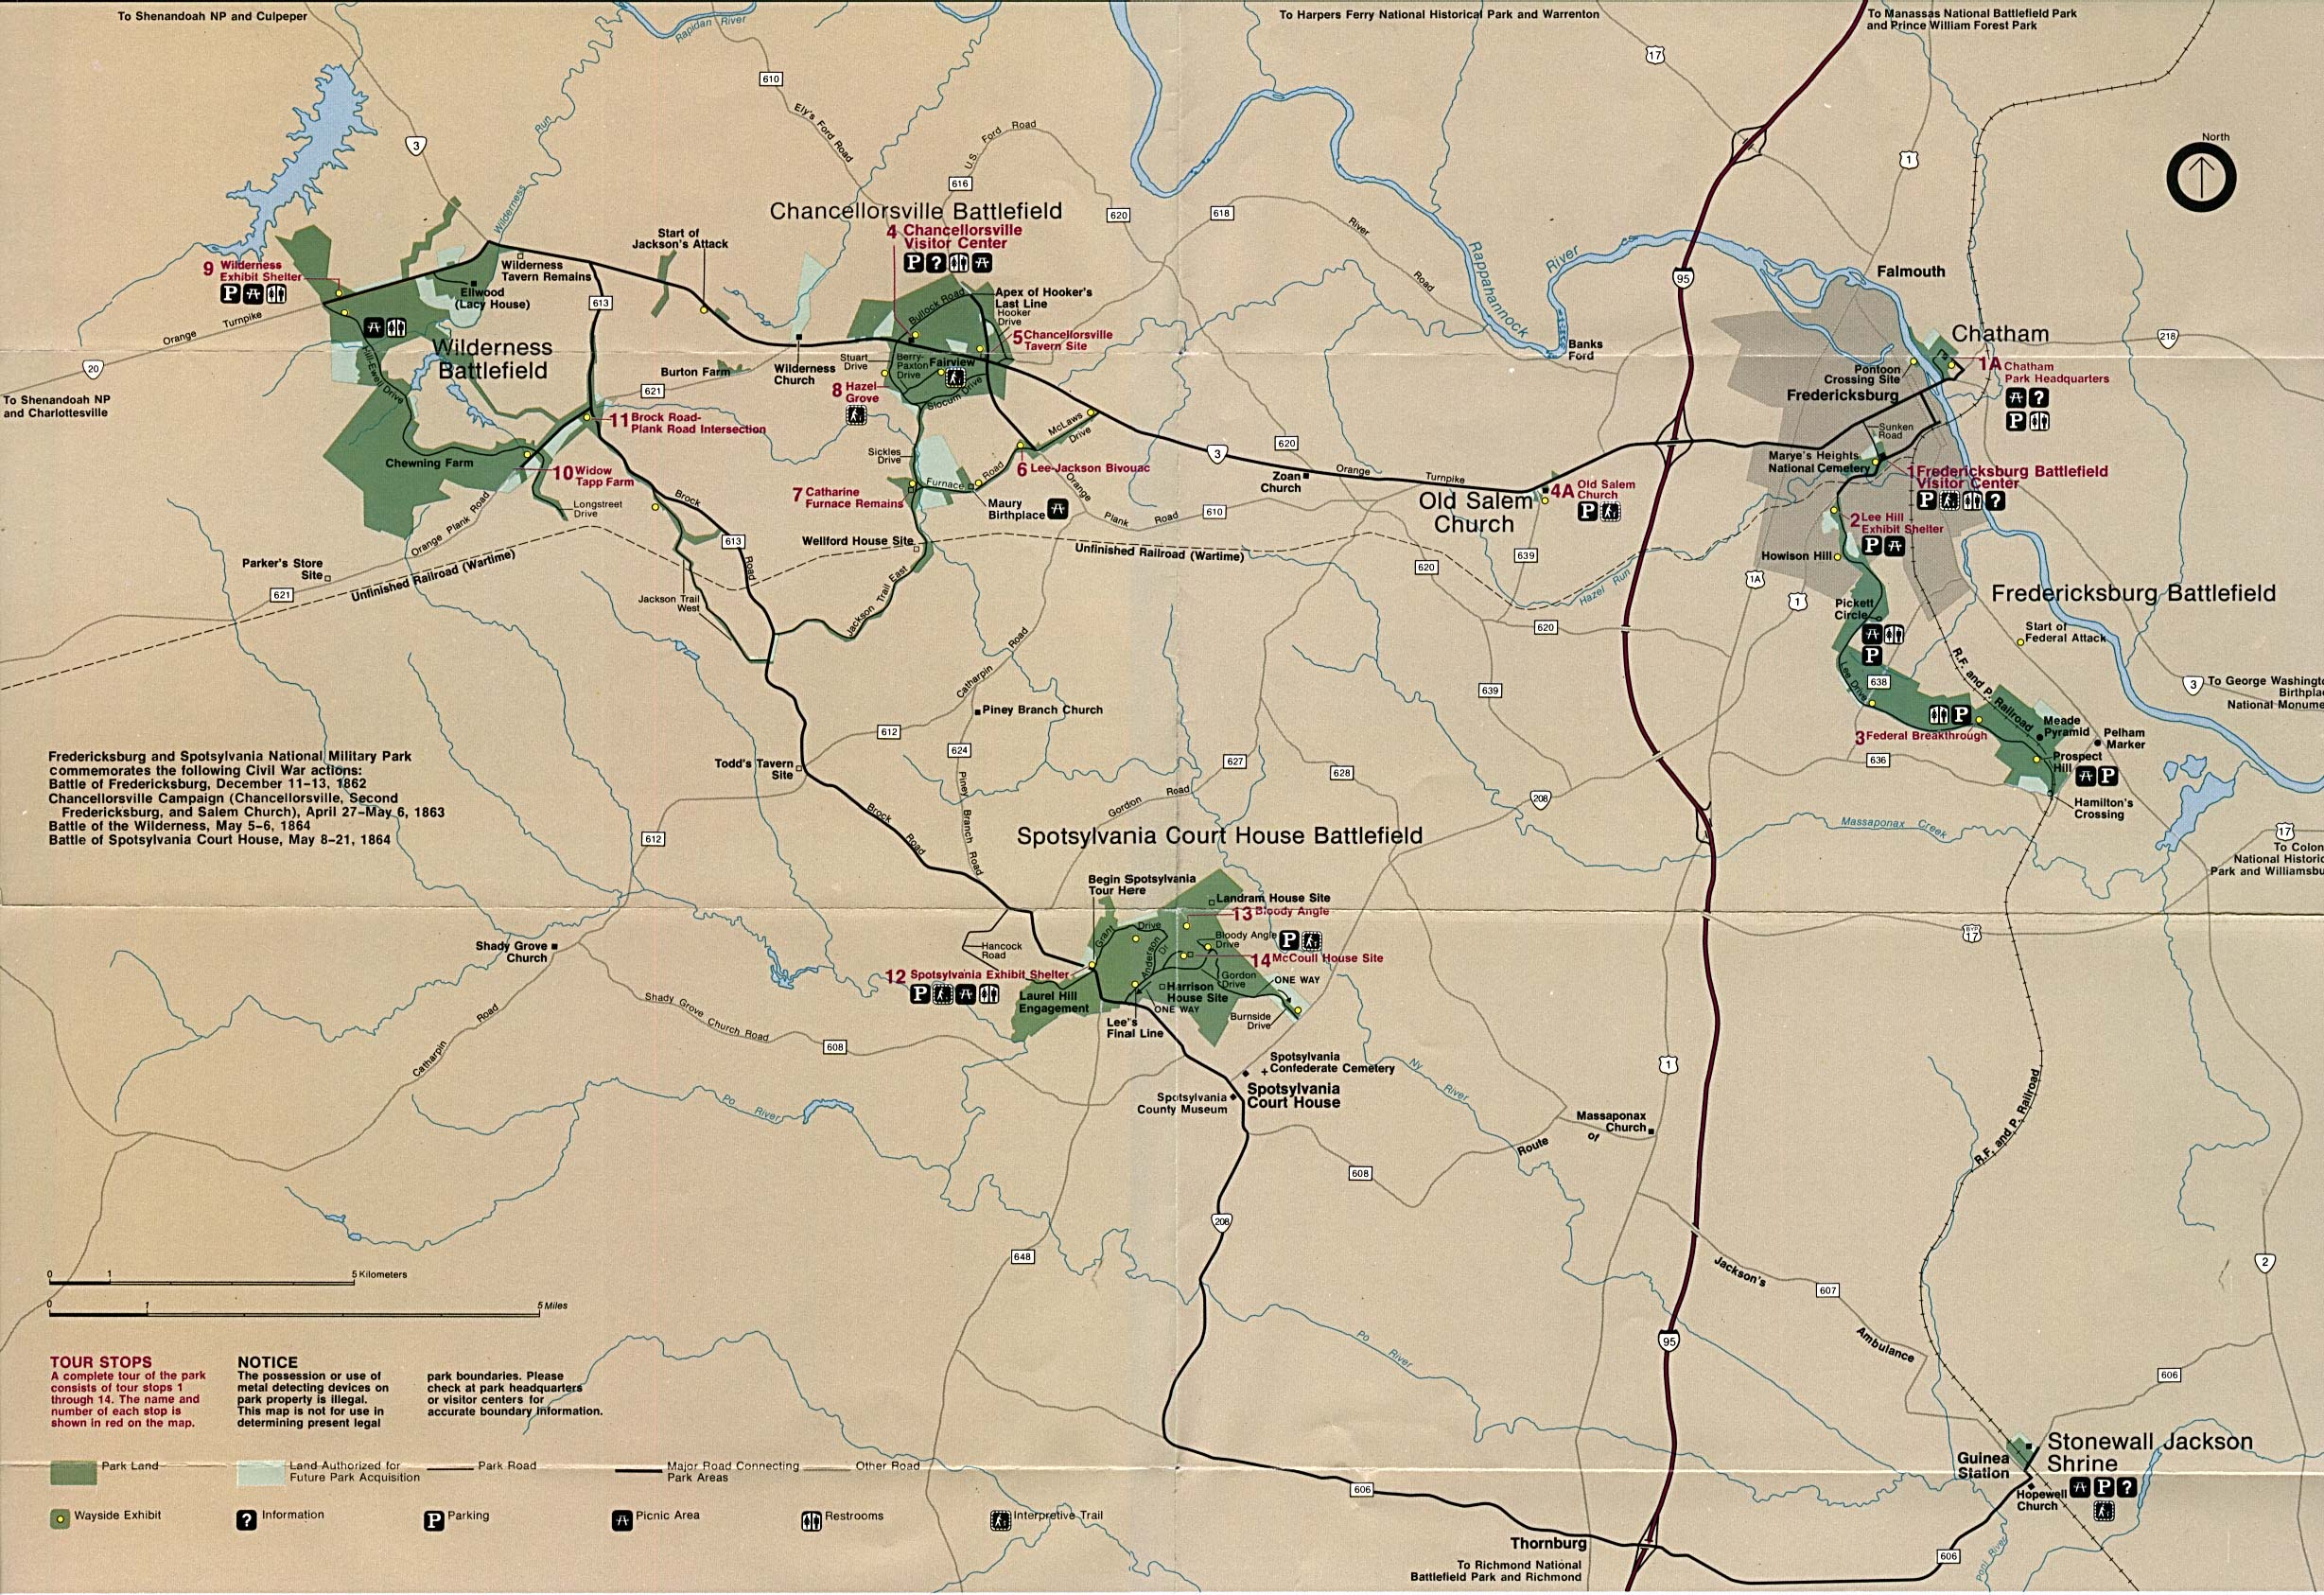 Virginia maps perry castaeda map collection ut library online maps of national parks monuments and historic sites sciox Image collections